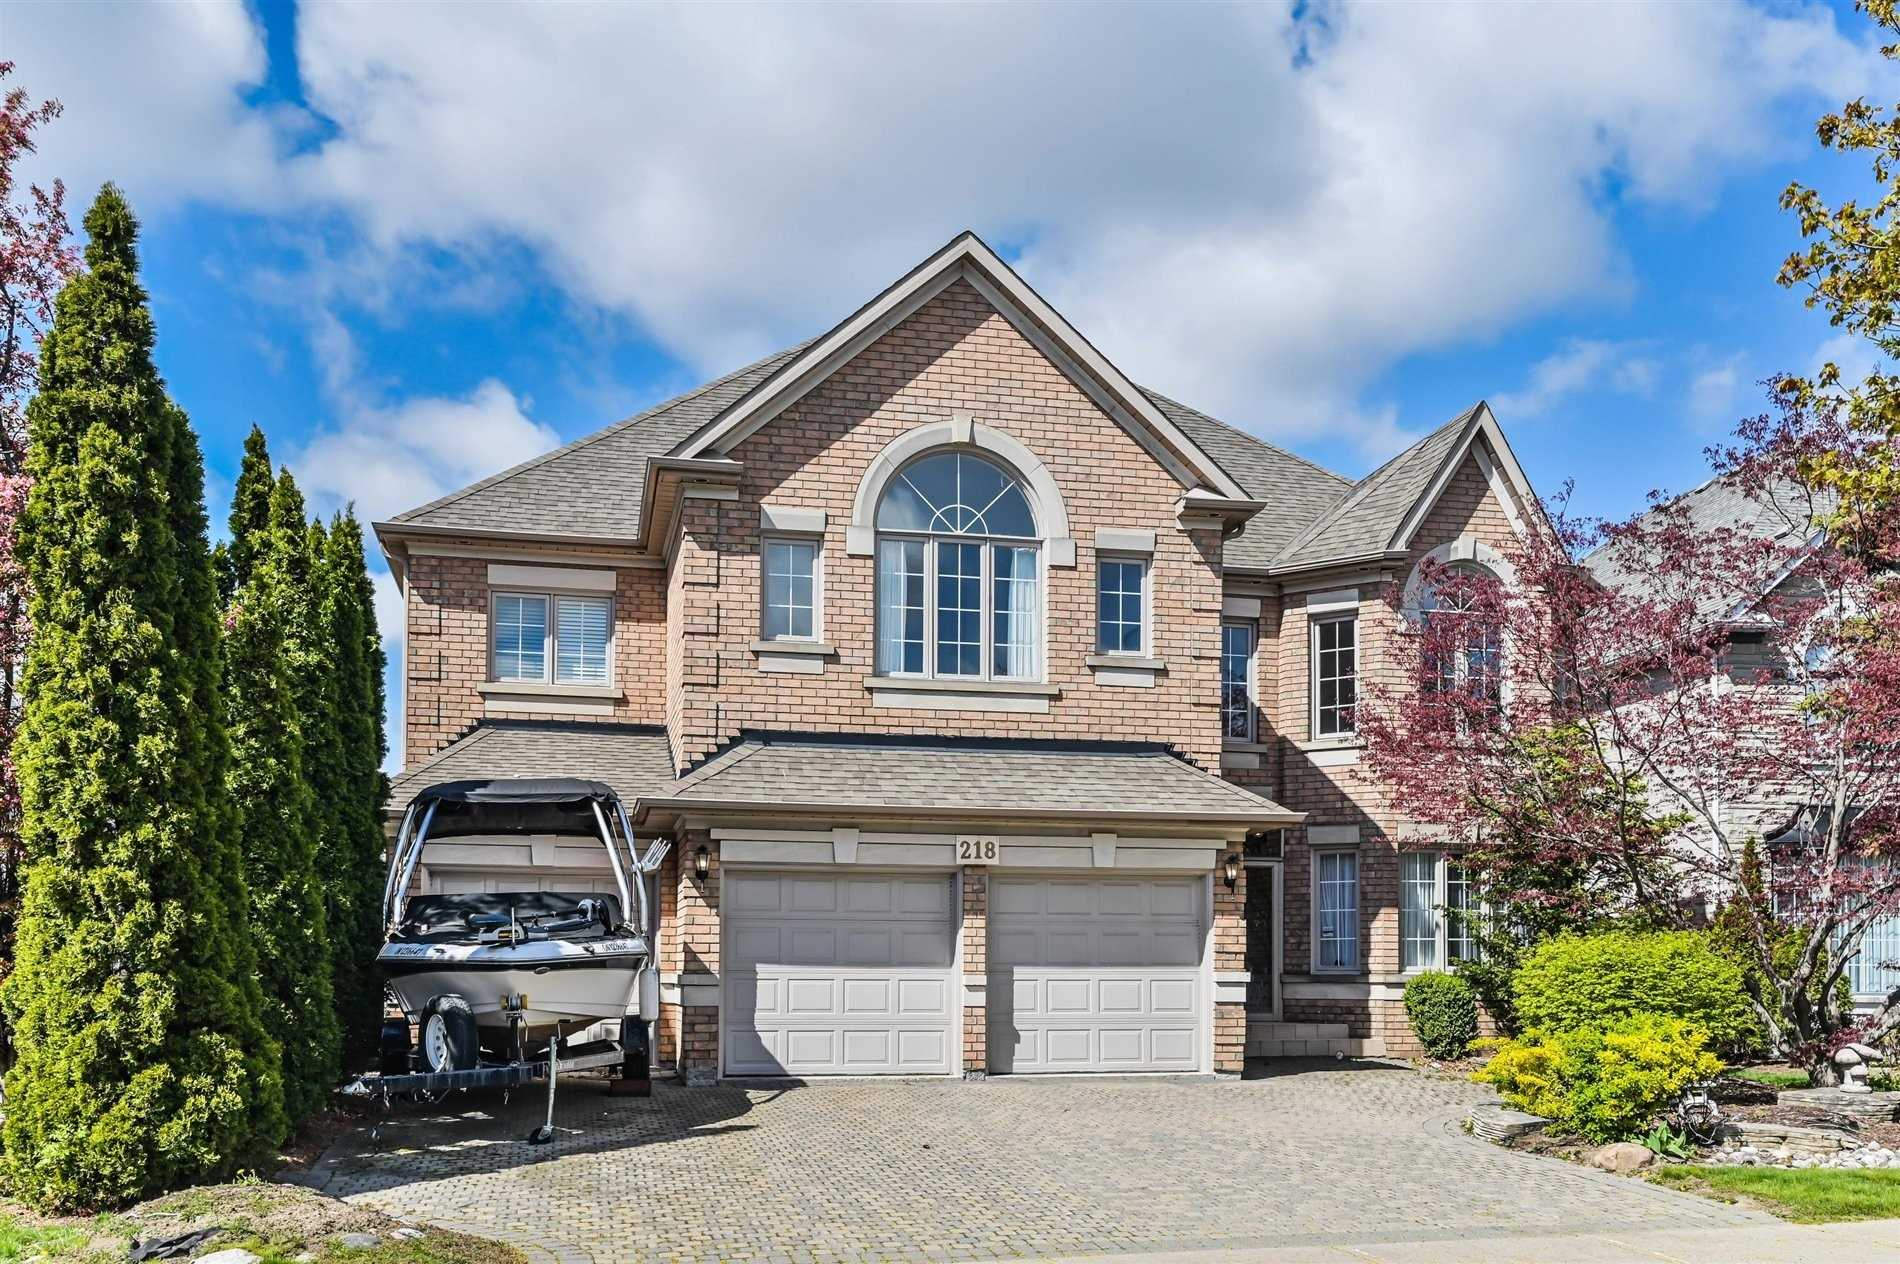 Detached house For Sale In Richmond Hill - 218 Boake Tr, Richmond Hill, Ontario, Canada L4B3Z6 , 5 Bedrooms Bedrooms, ,5 BathroomsBathrooms,Detached,For Sale,Boake